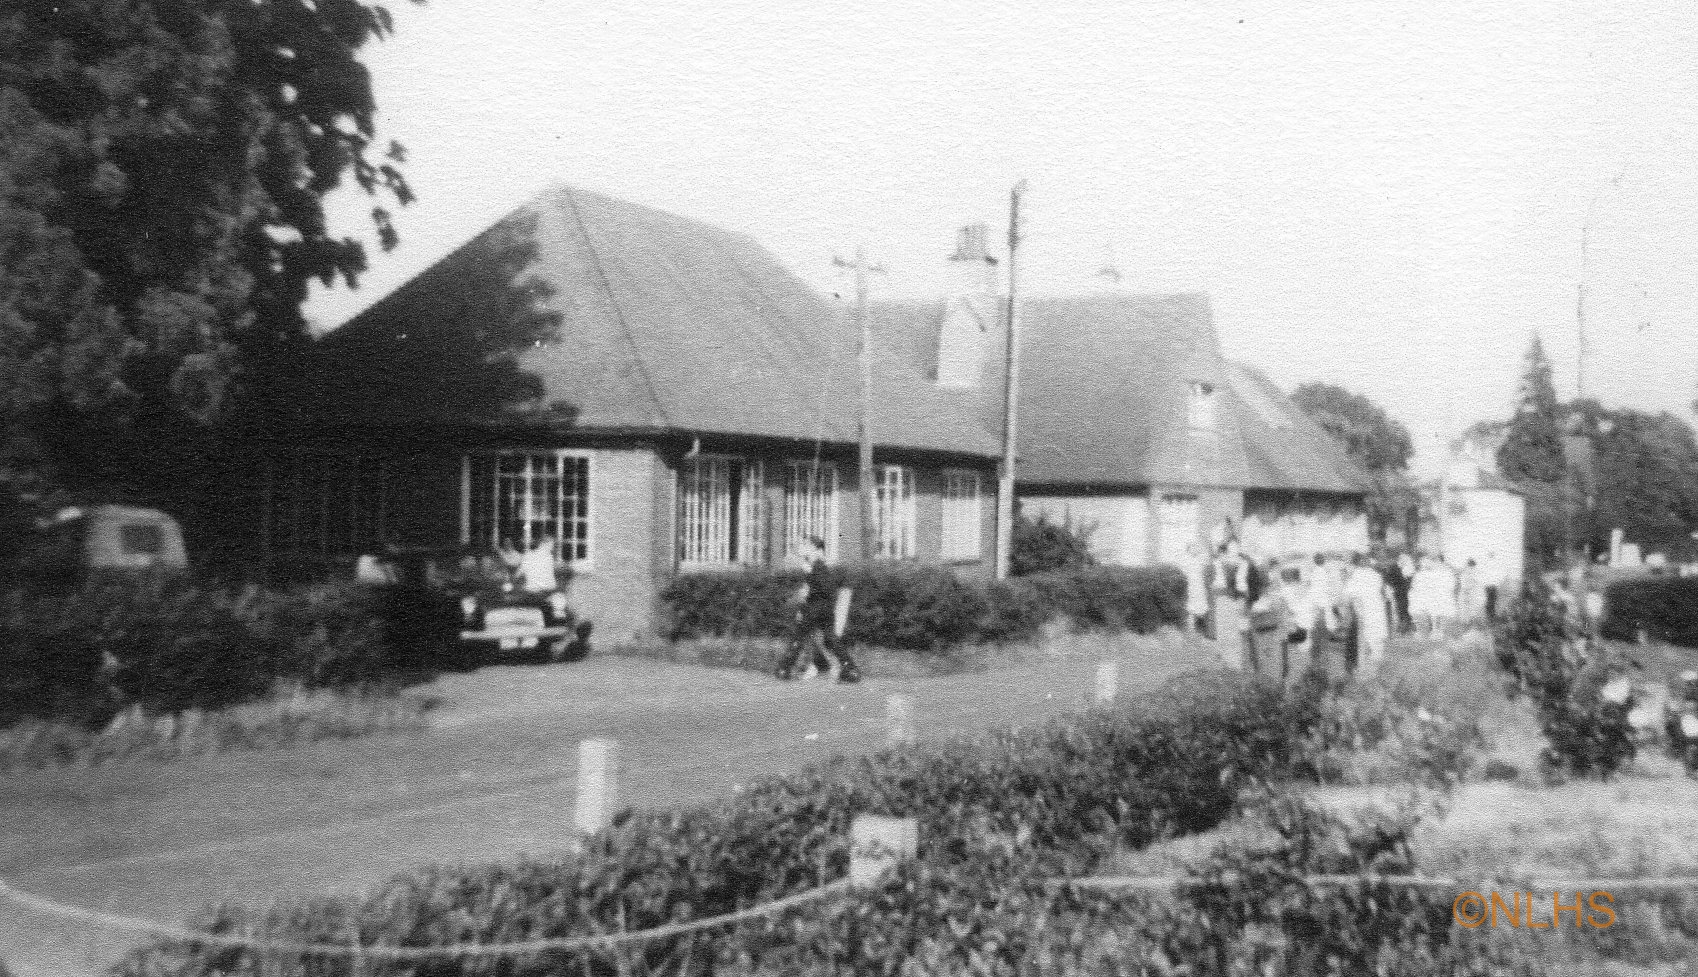 Village Hall Newdigate Local History Society